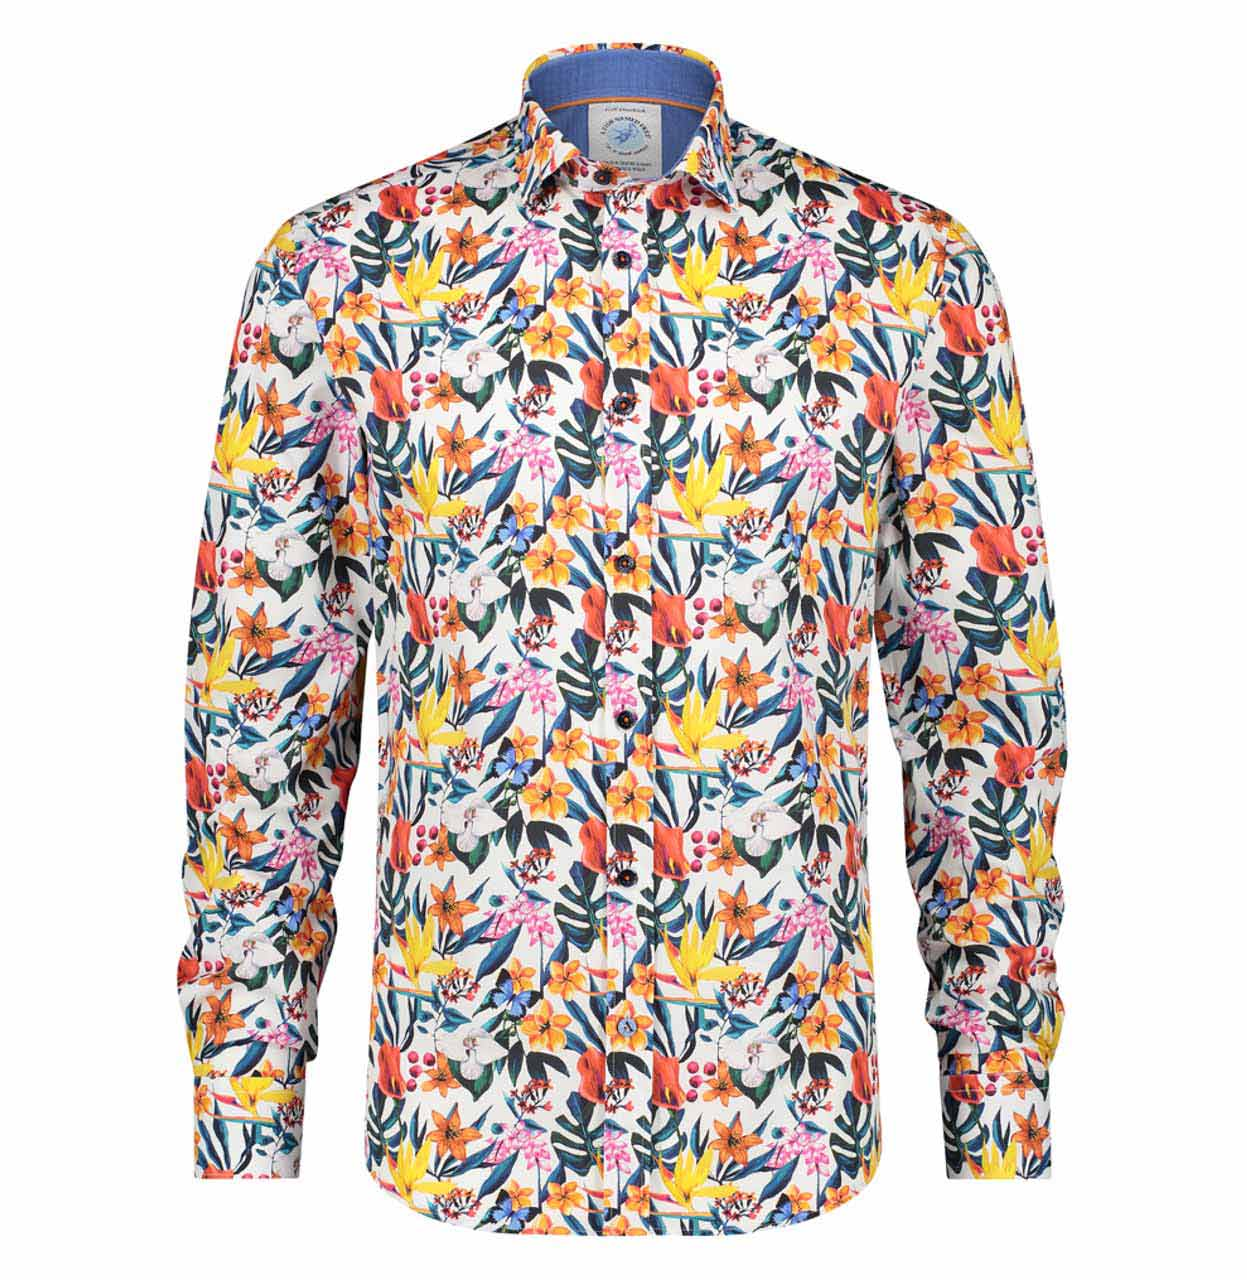 A Fish named Fred Shirt 22.01.002 White multicolour 22.01.002 wit Maat M